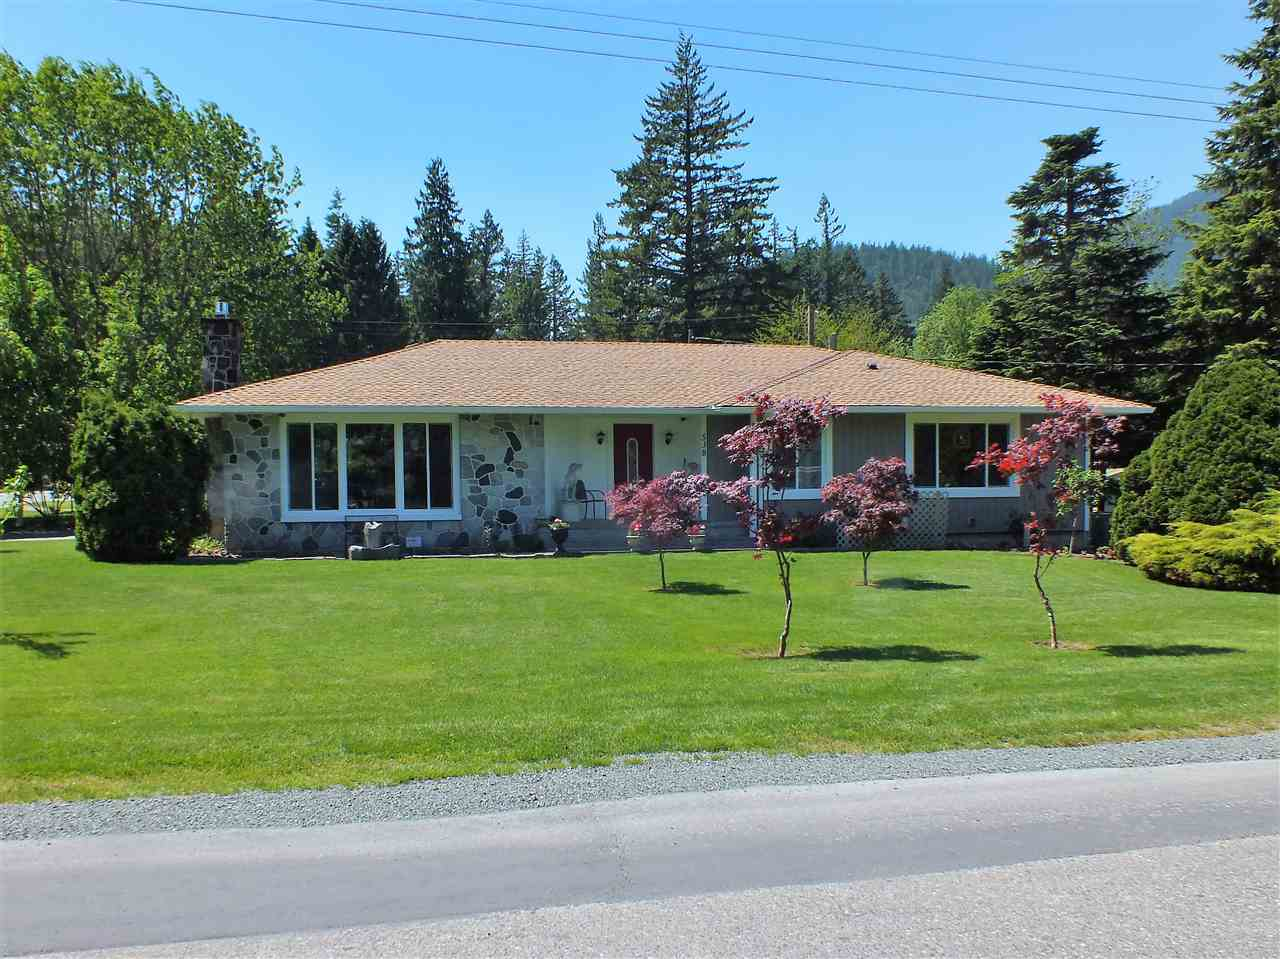 Retro charm blends nicely w/quality modern upgrades in this rancher w/full bsmt, (3740 sq ft total living area) ,on subdivideable corner lot.  Over $150K of upgrades inc. kitchen, 4 baths, windows, roof, heat pump, electrical, plumbing, H/W on demand, siding, gutters, fencing & so much more. Original coved ceilings & hardwood floors w/dark inlays, oversized rooms, sep entrance to basement & easily converted from 3 to 5 bedroom home. Property measures 156' x 116' allowing at least 50' x 116' lot with lane access to be subdivided from north side. Prime location near schools, golf & downtown core.